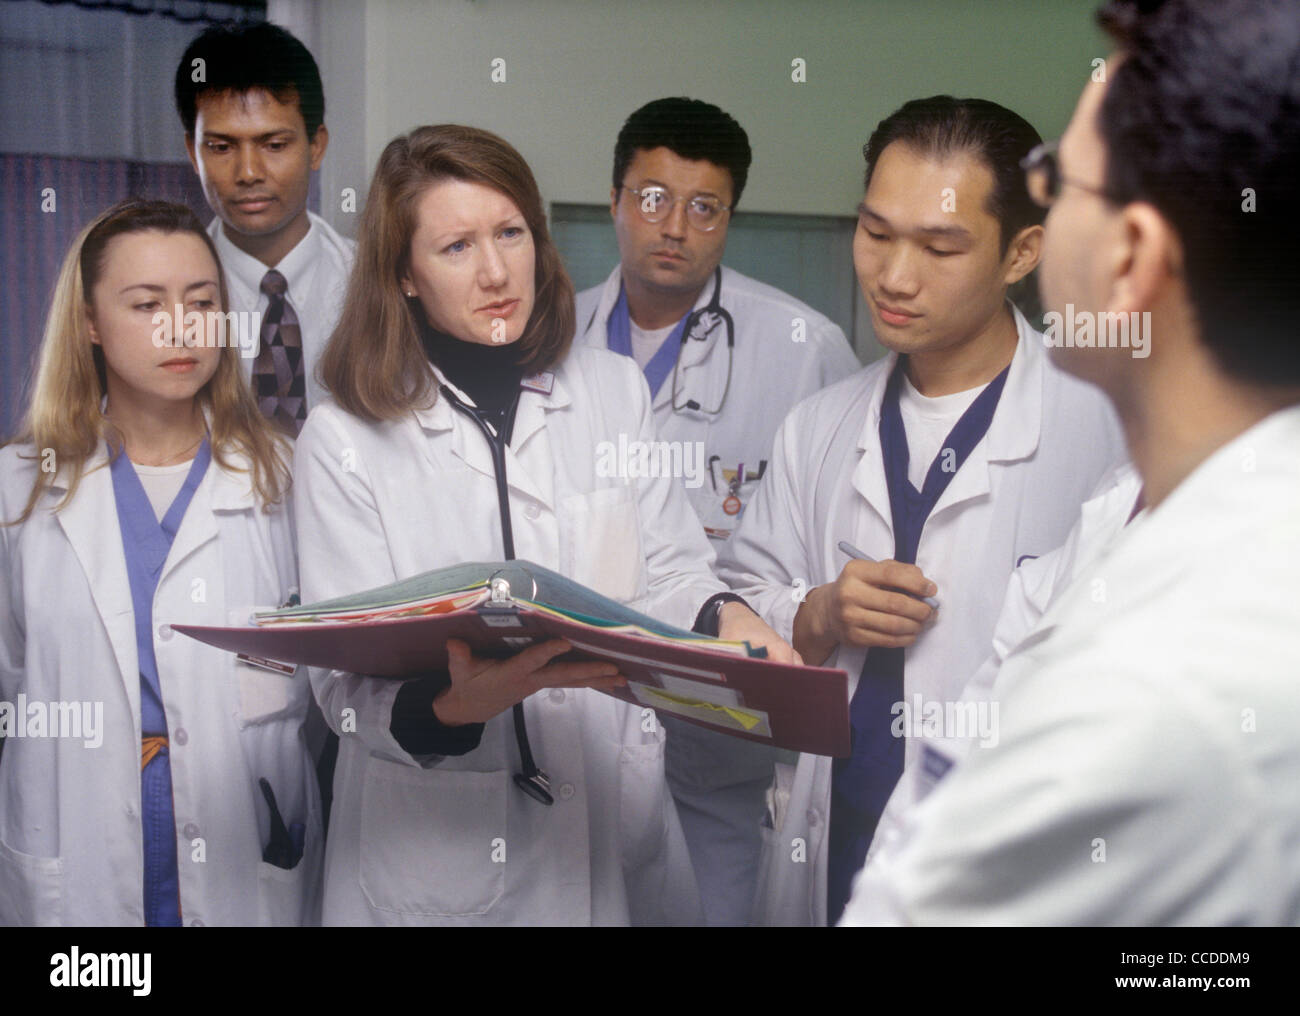 A physician discussing patient care with medical residents and holding a patient chart. - Stock Image